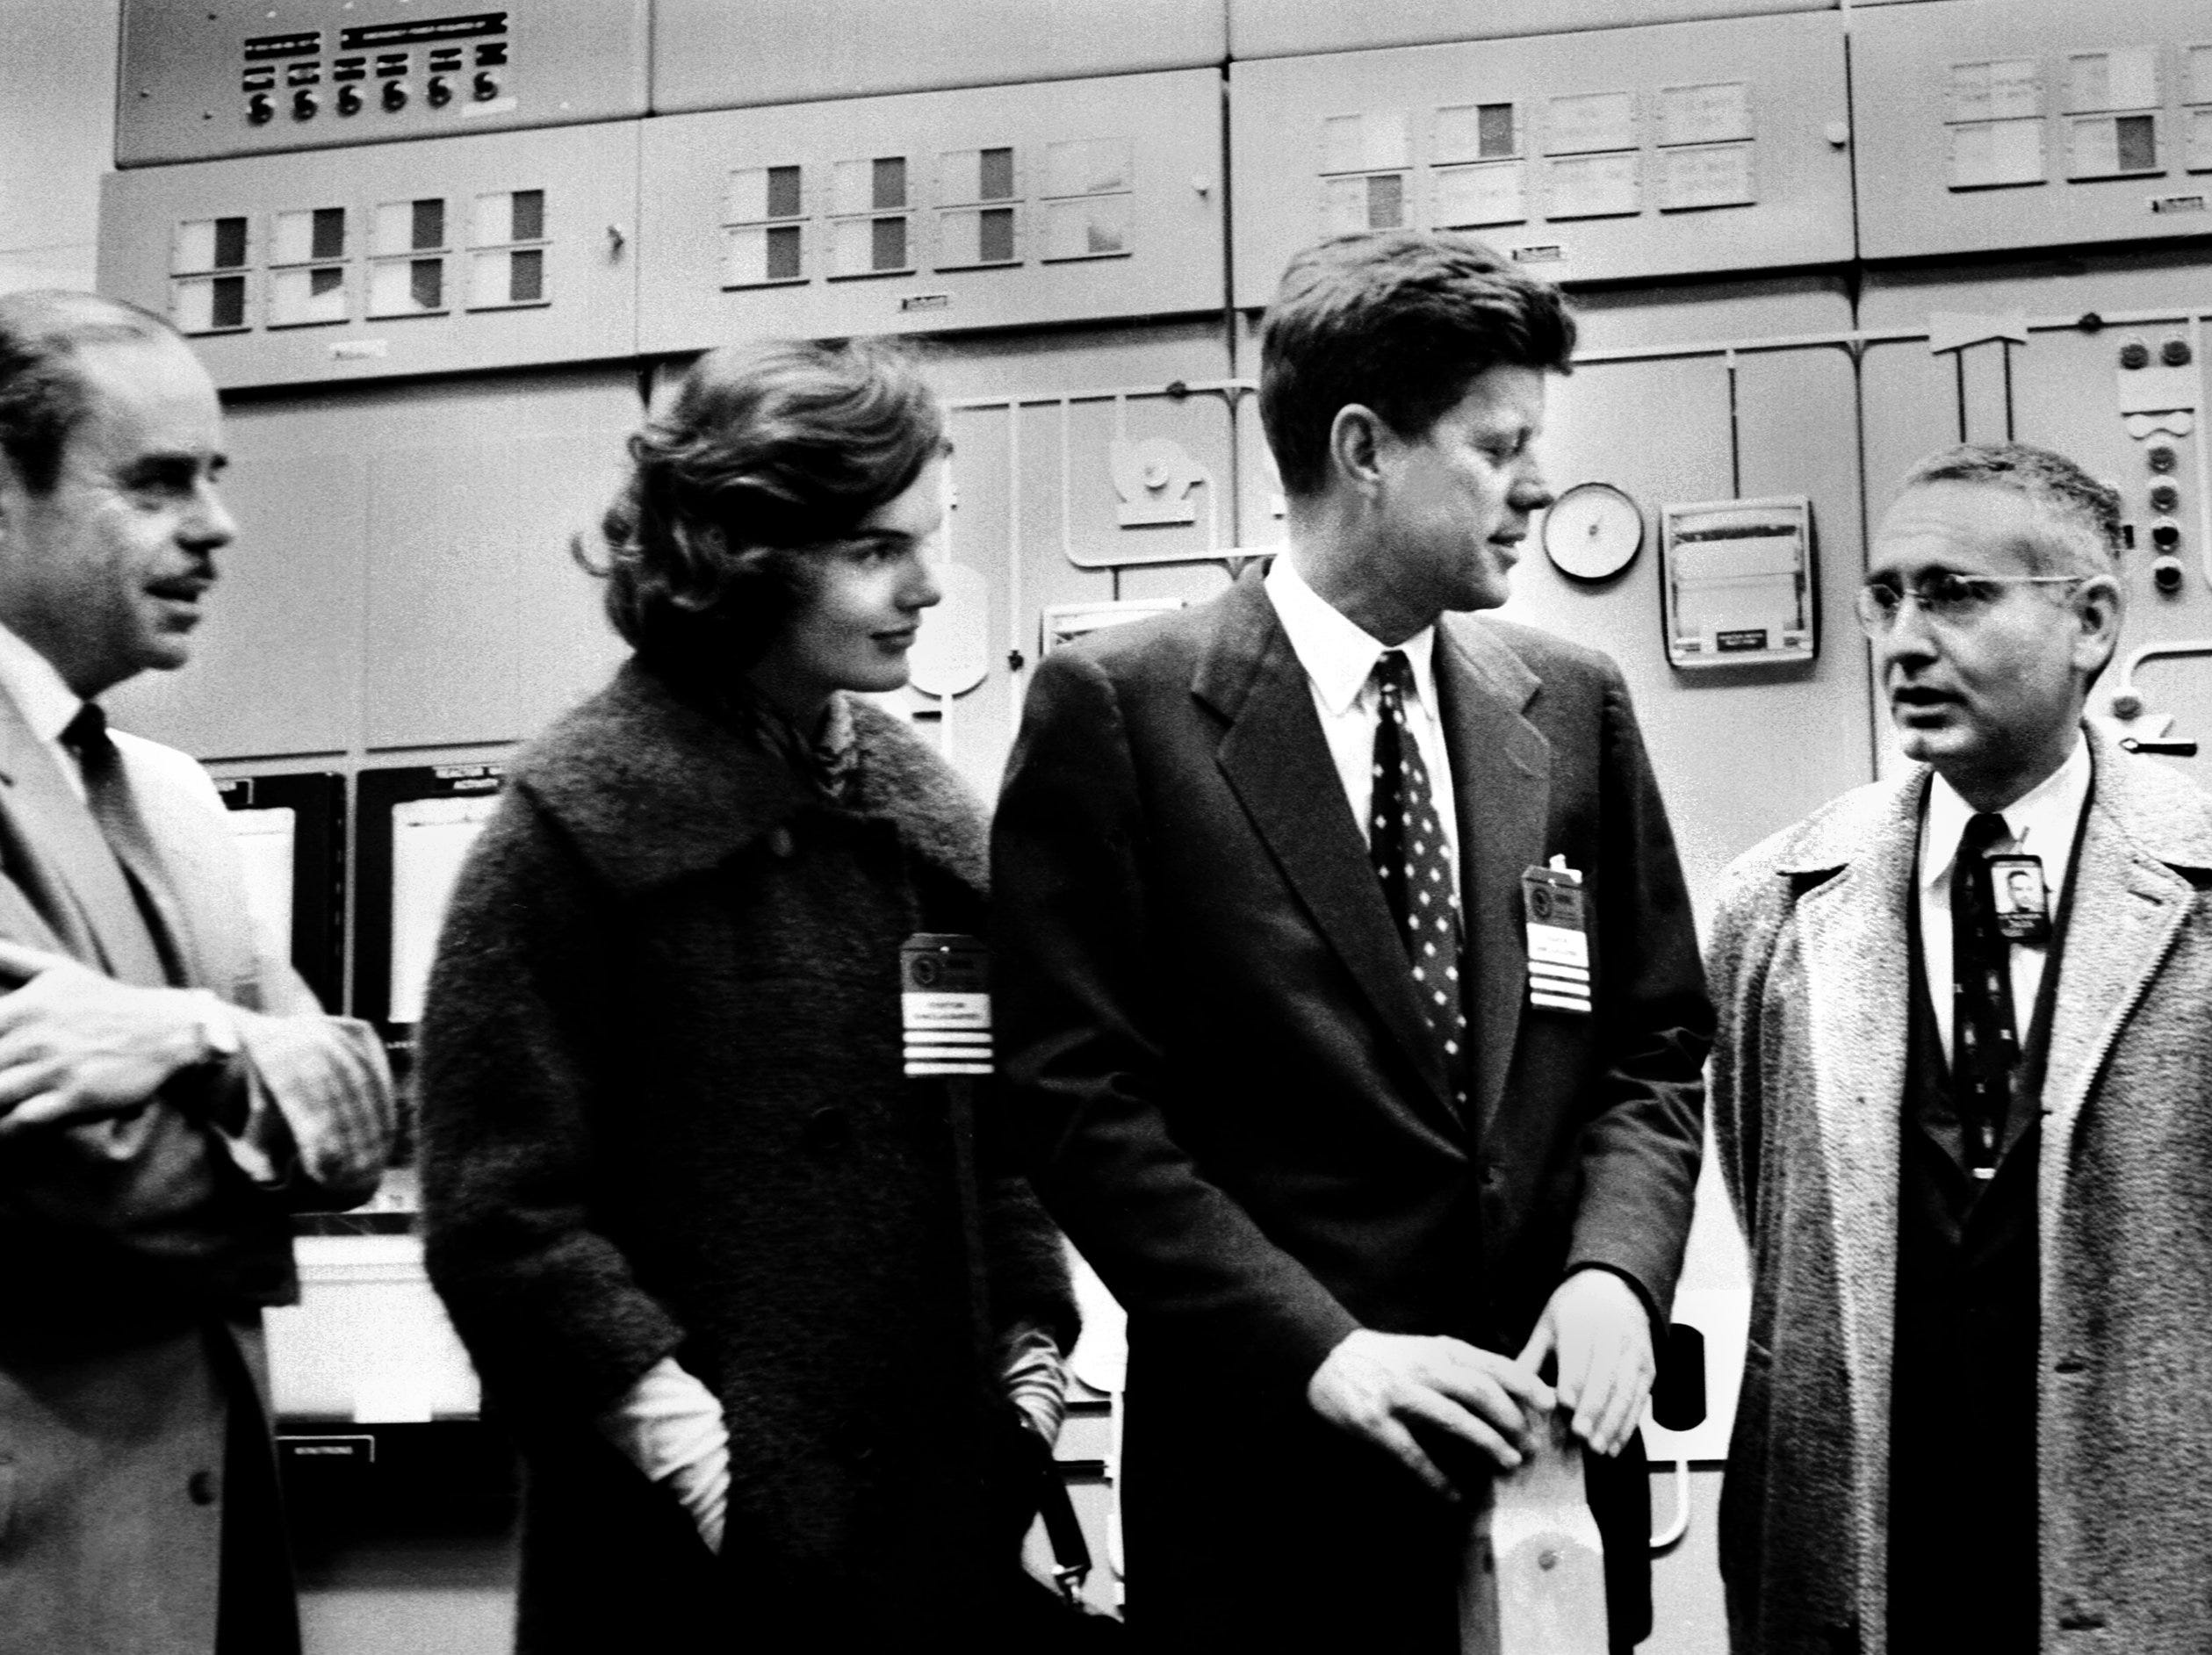 Sen. John F. Kennedy and his wife, Jacqueline, visit the Oak Ridge Research Reactor on Feb. 24, 1959.  At far right is Sen. Albert Gore, Sr; beside him is ORNL Director Alvin Weinberg. The man at left is Sam Sapirie of the U.S. Atomic Energy Commission.